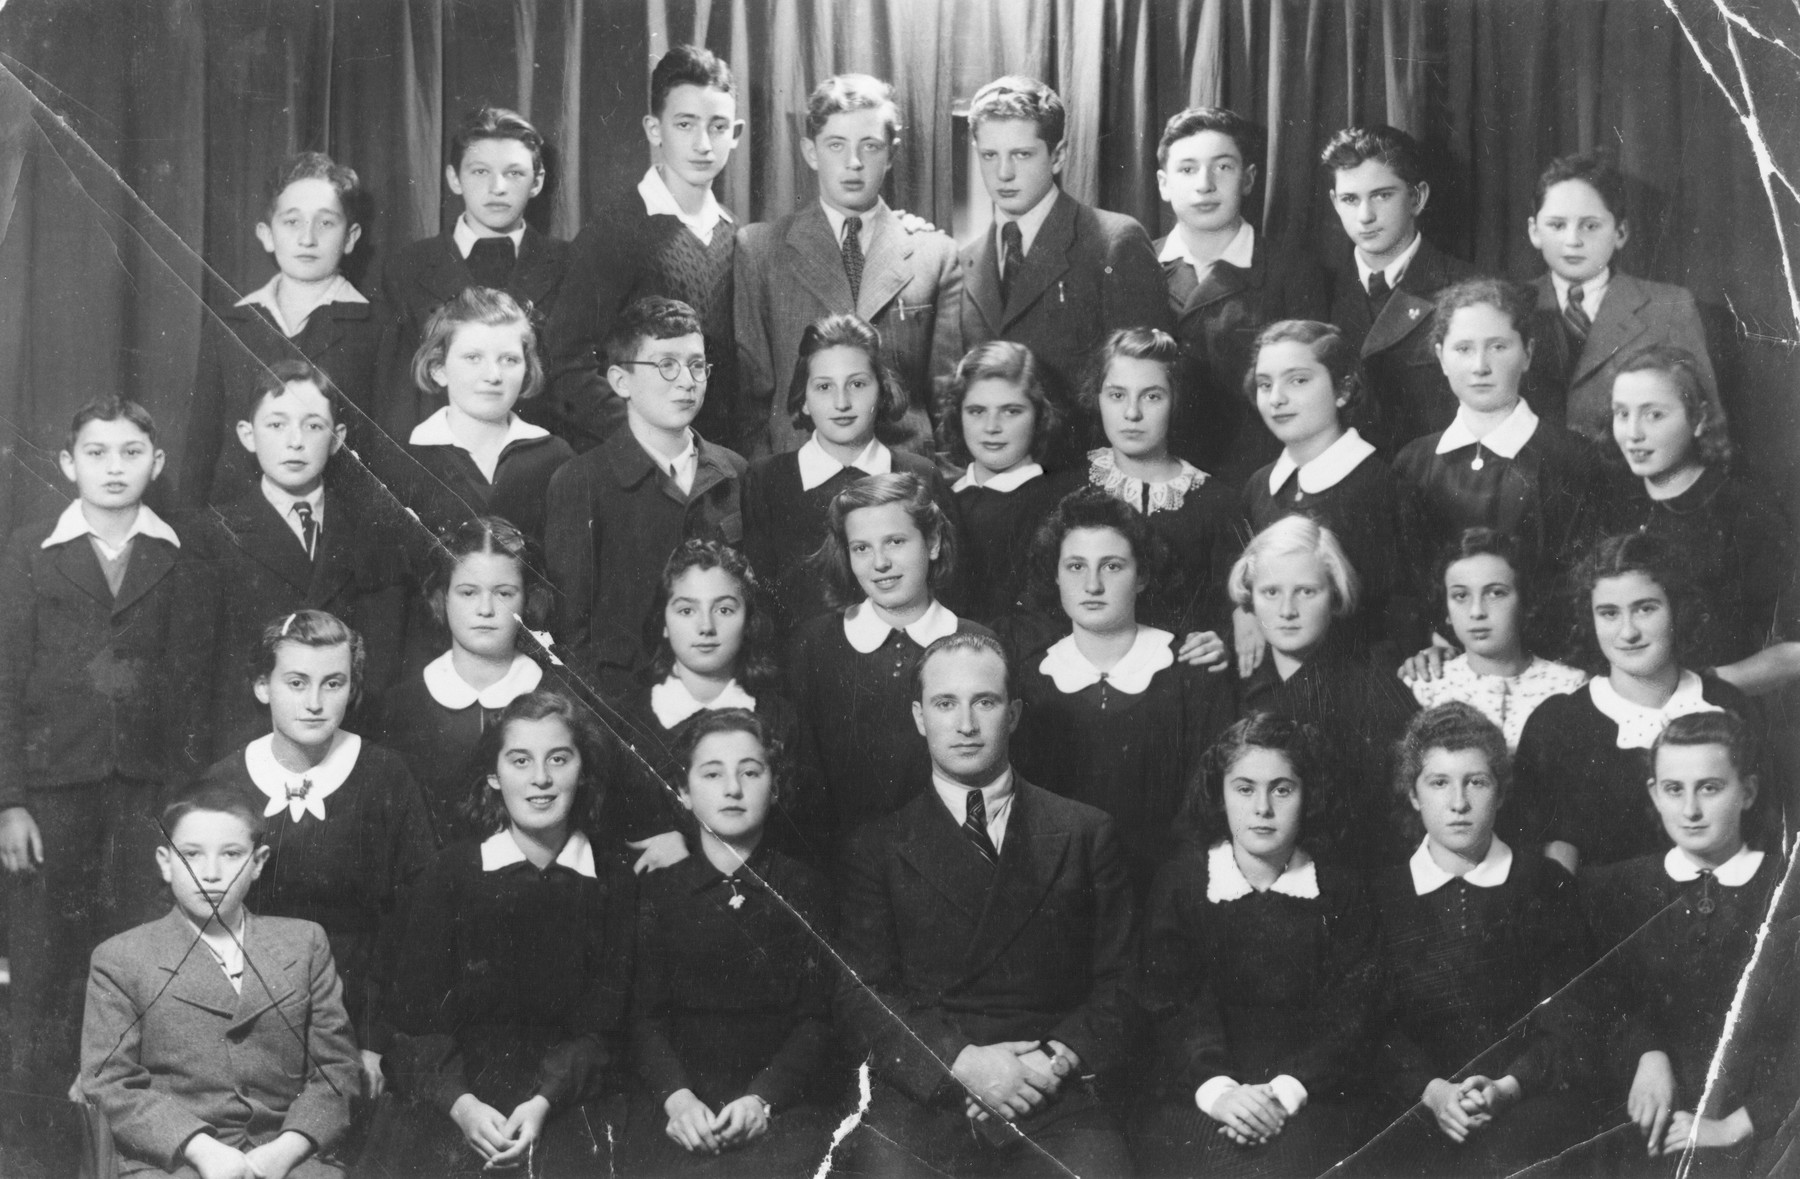 Group portrait of the students of the Schwabes Hebrew gymnasium in Kovno, Lithuania.  Among those pictured is Ben Zion (Nolik) Schmidt (top row, second from the right). Freda (Shottenstein) Schatenstein (second row from bottom, fourth person from right).